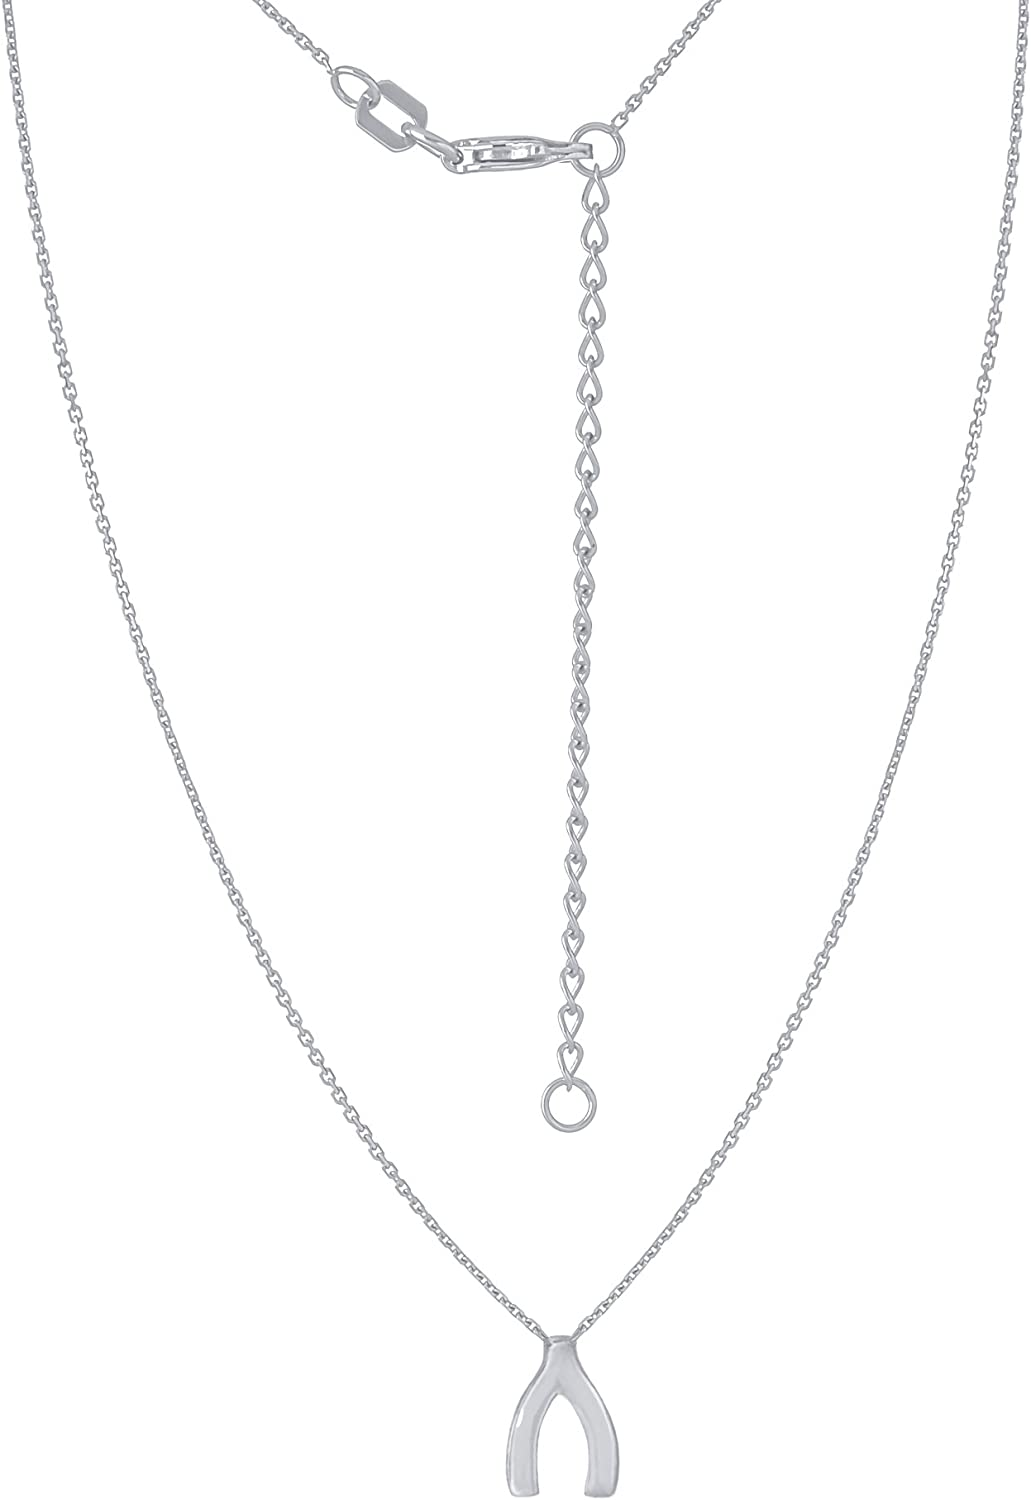 14Kt Gold Wishbone Necklace 18 Inches Wishbone Necklace